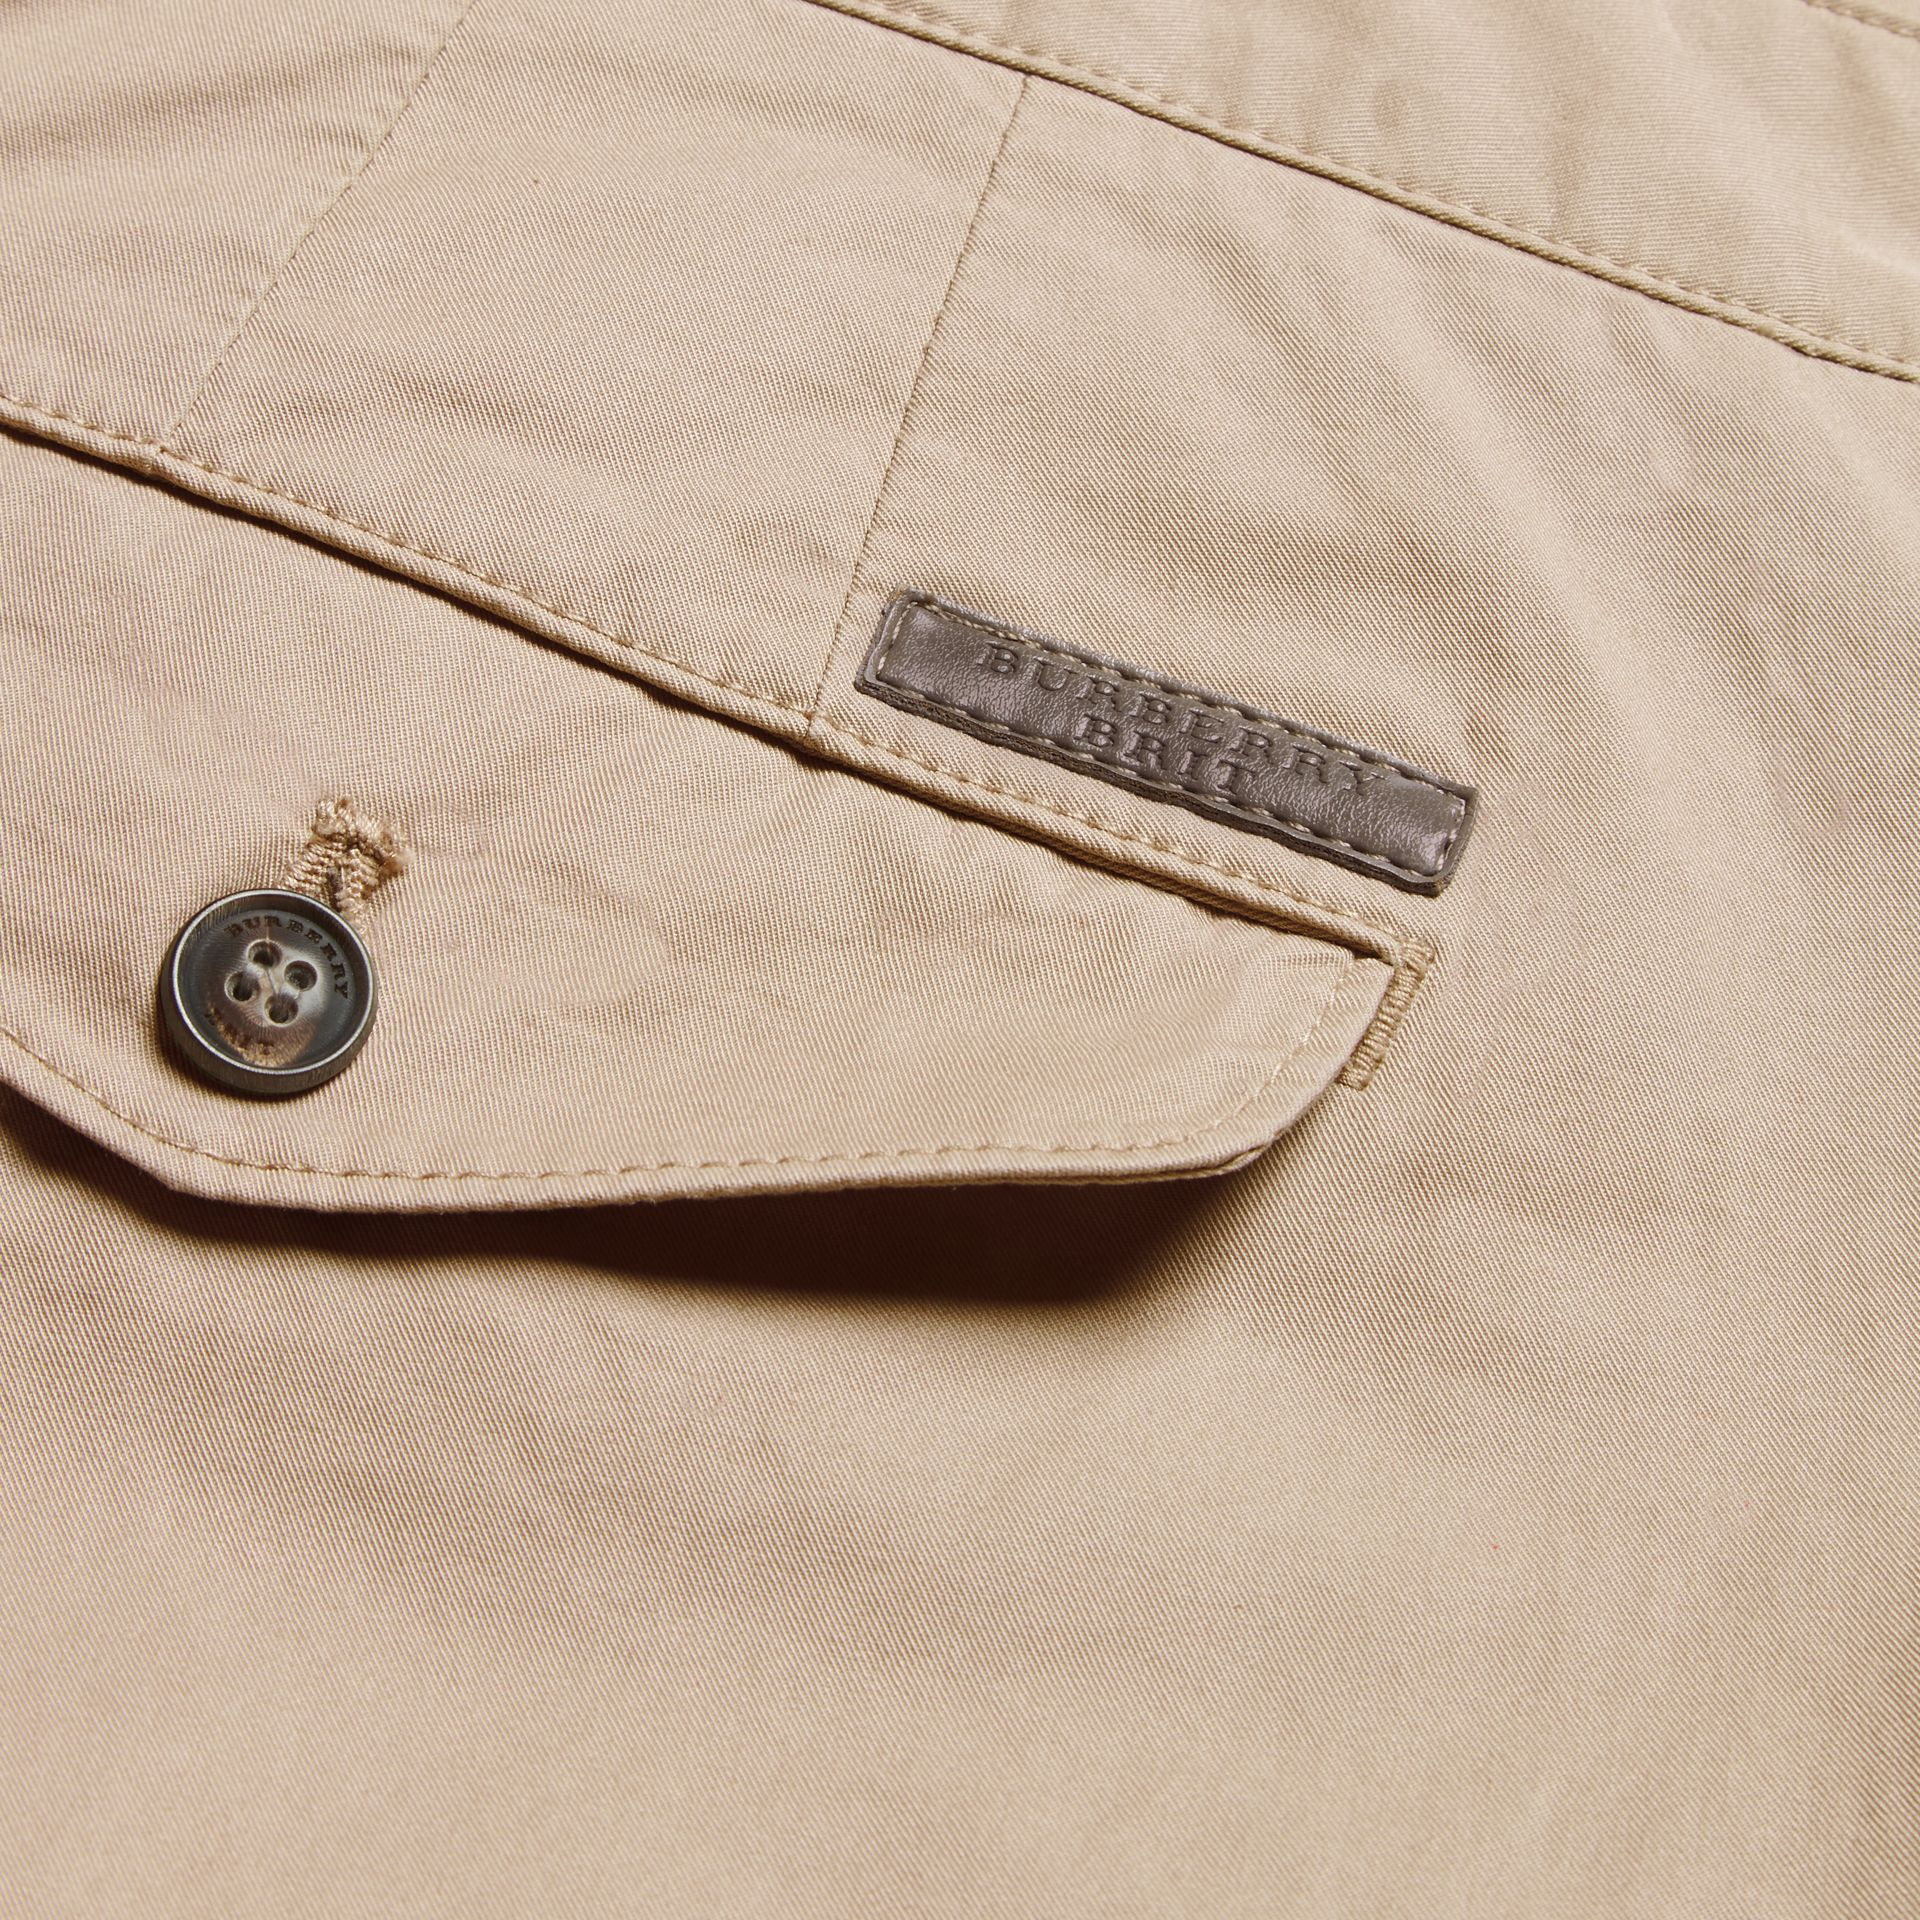 Slim Fit Cotton Chinos in Taupe - Men | Burberry - gallery image 2